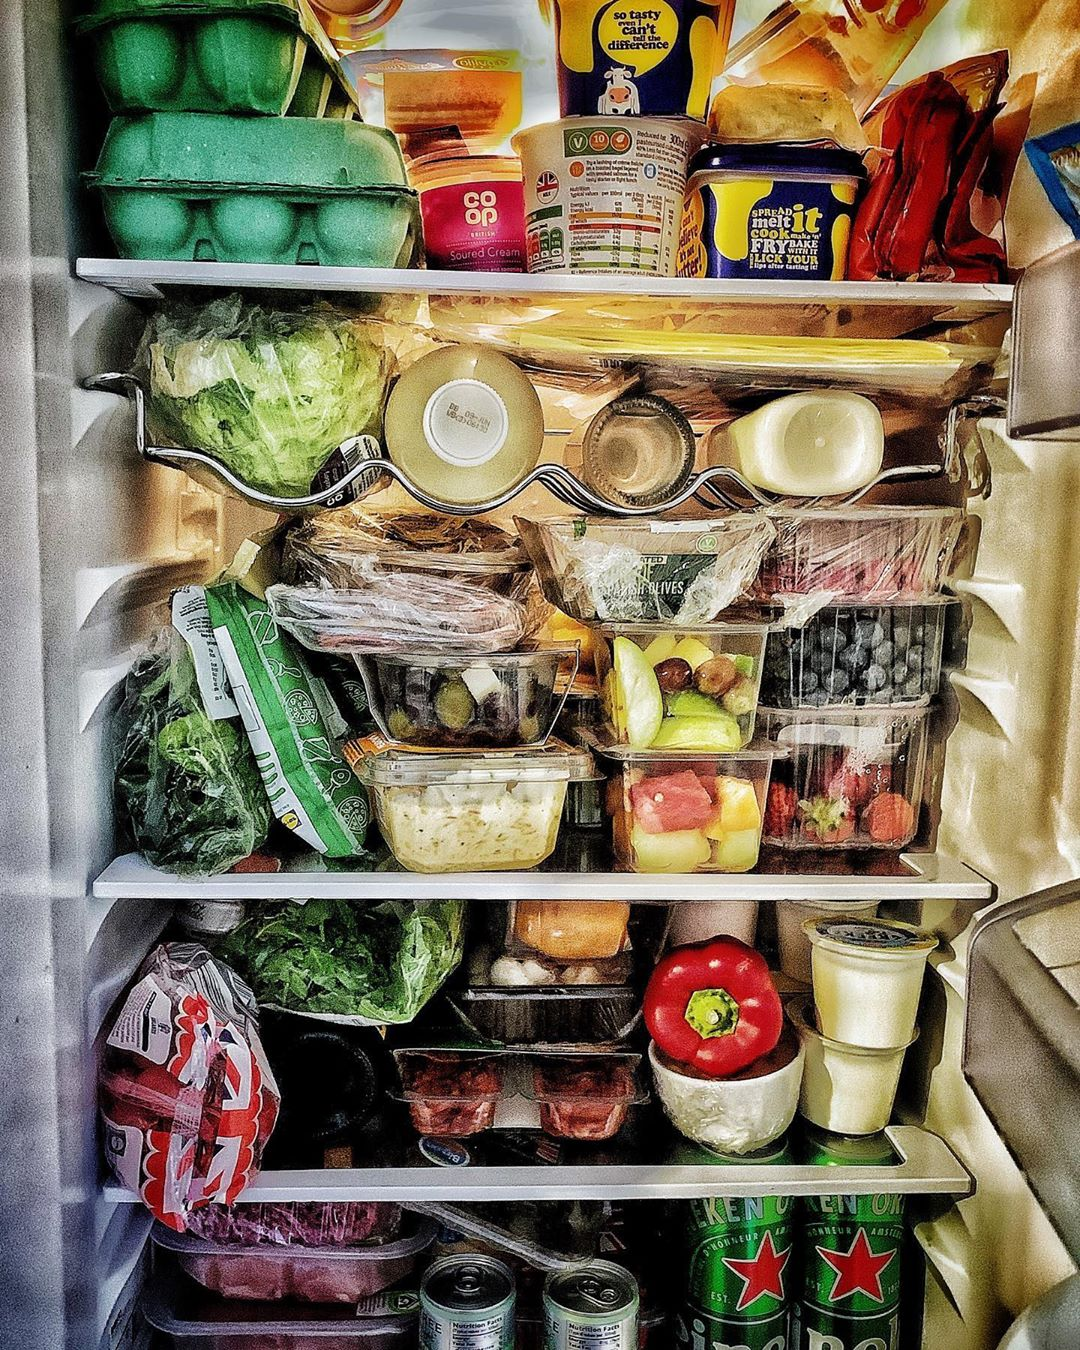 overpacked fridge